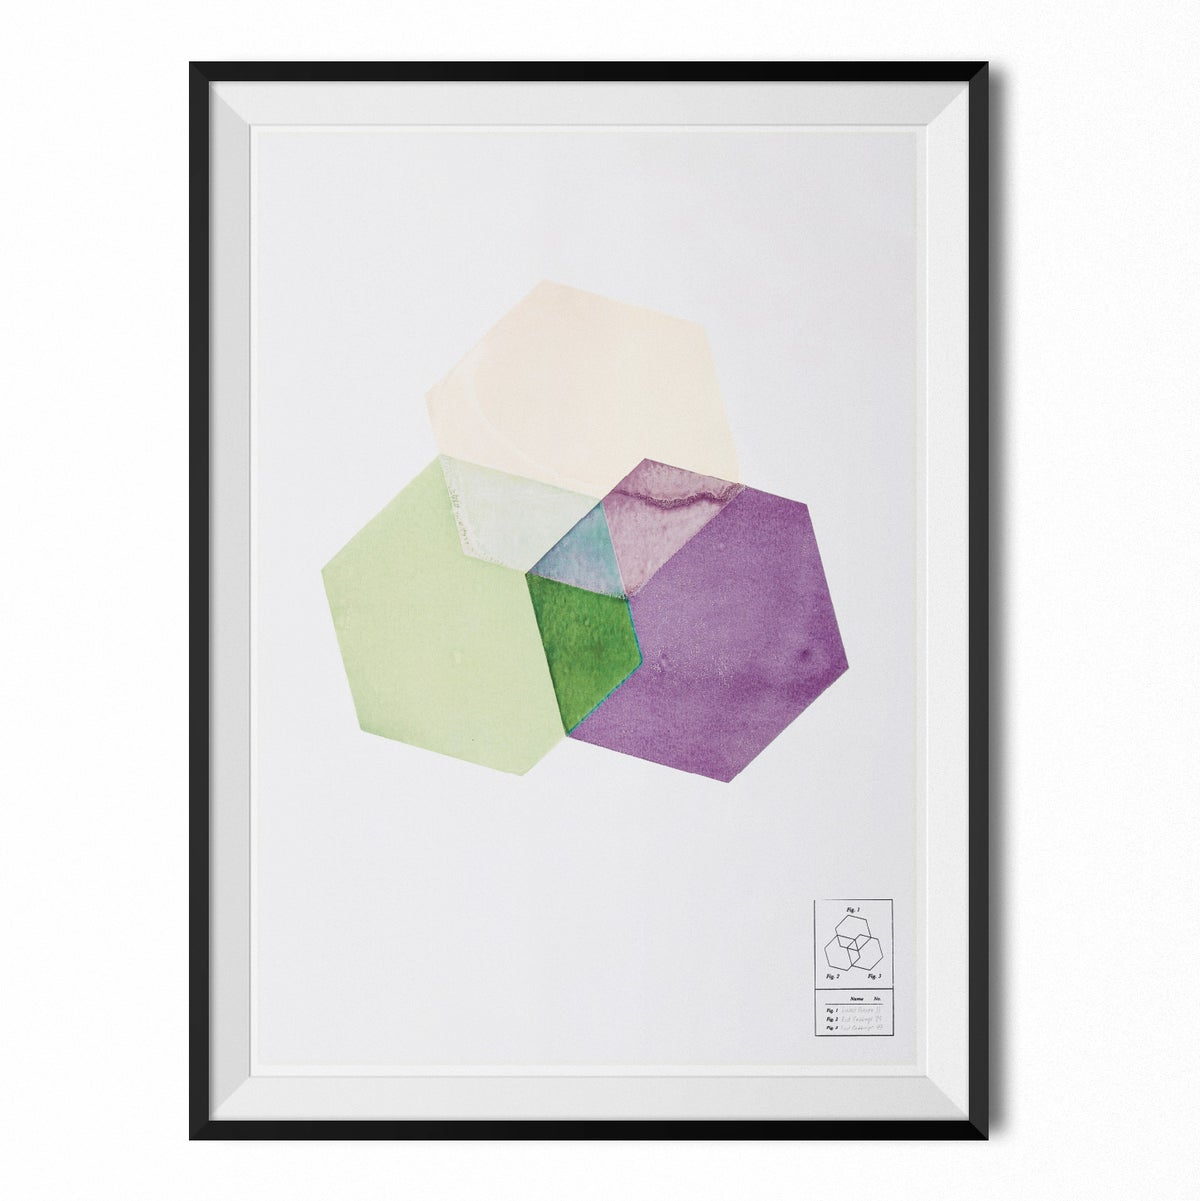 Image of Poster - Hexagon shapes #1 (70x100 cm)